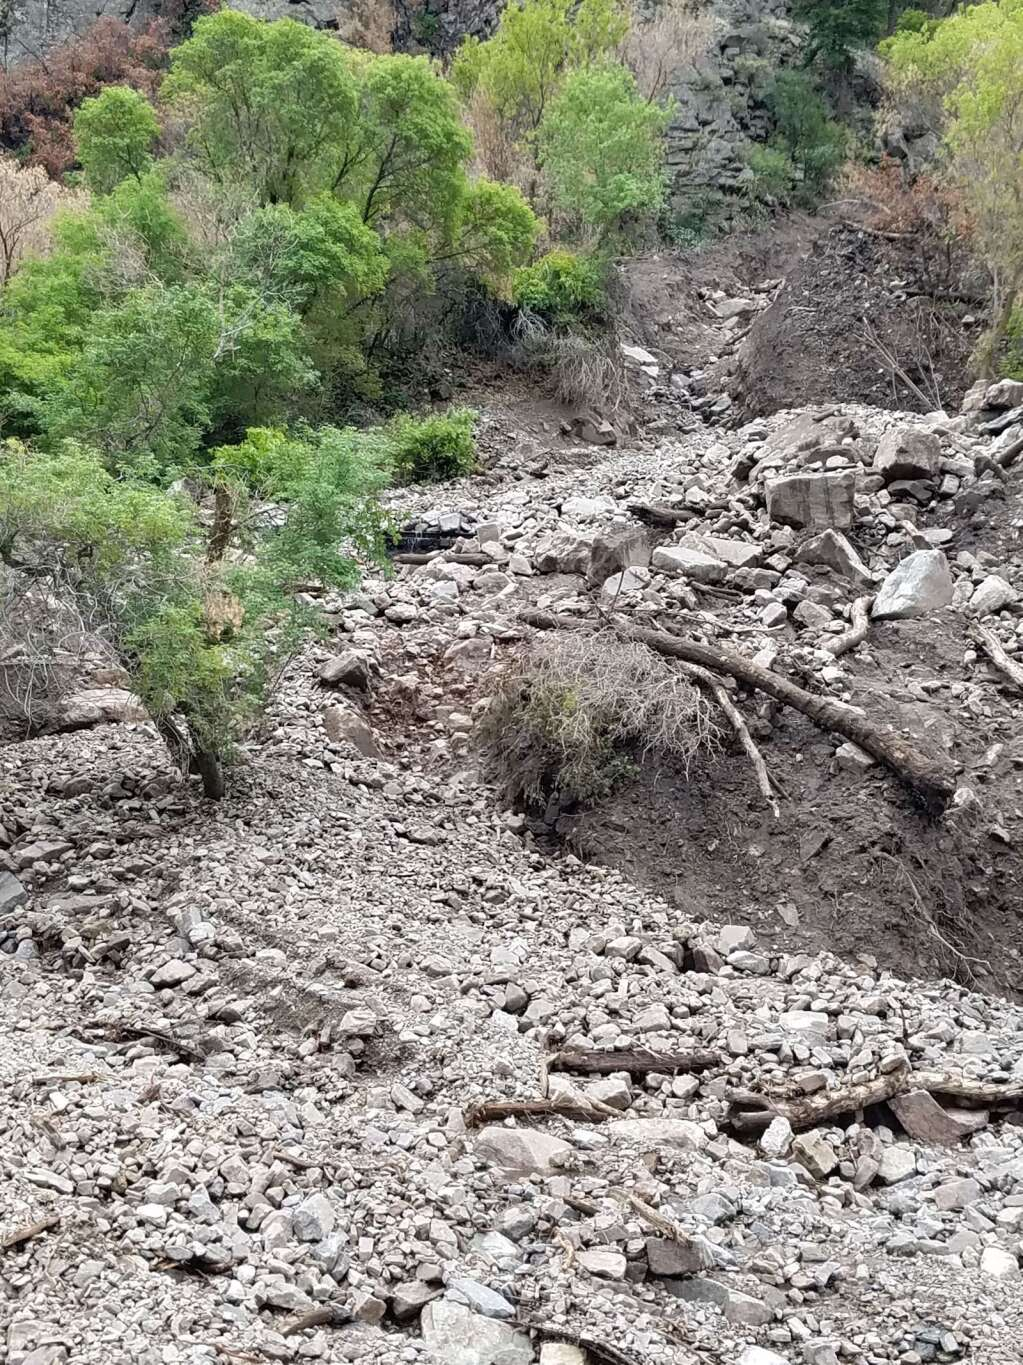 A look at the mud and debris that Colorado Department of Transportation officials and river resource experts are dealing with along Interstate 70 in Glenwood Canyon after multiple days of heavy monsoon season rains.| Courtesy CDOT